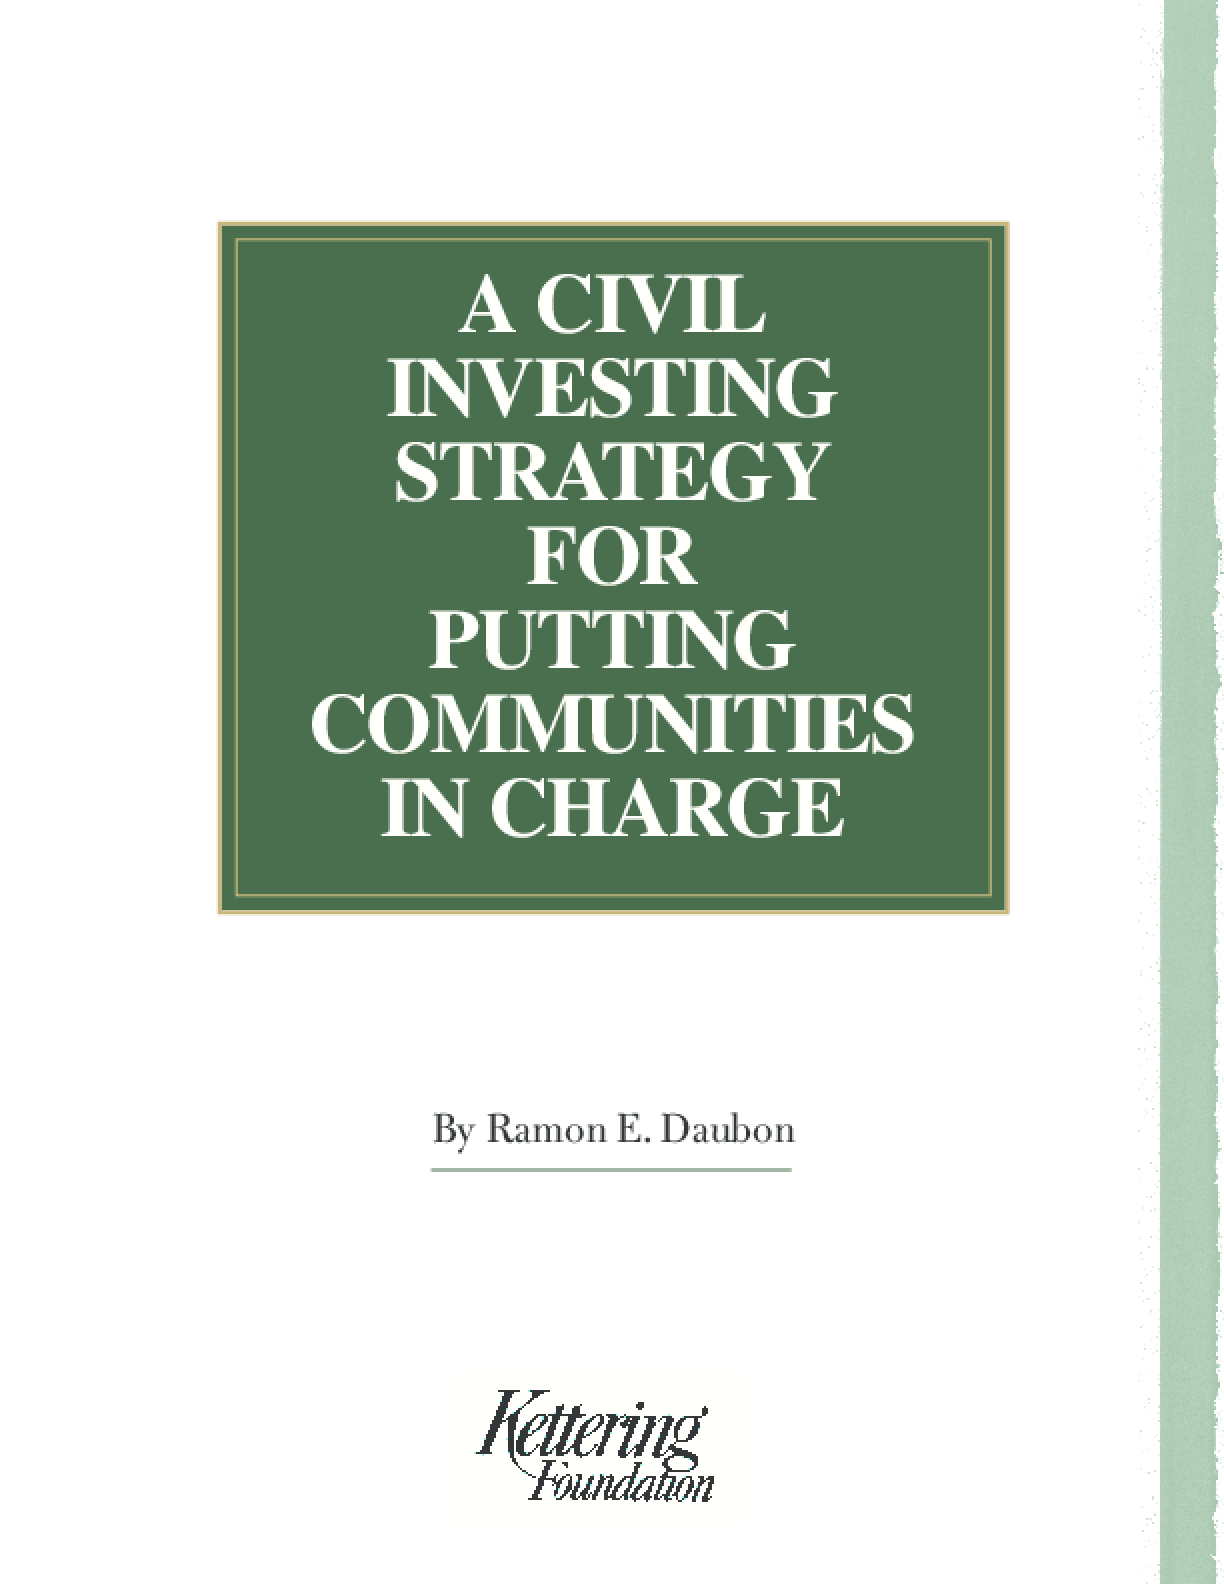 A Civil Investing Strategy for Putting Communities in Charge